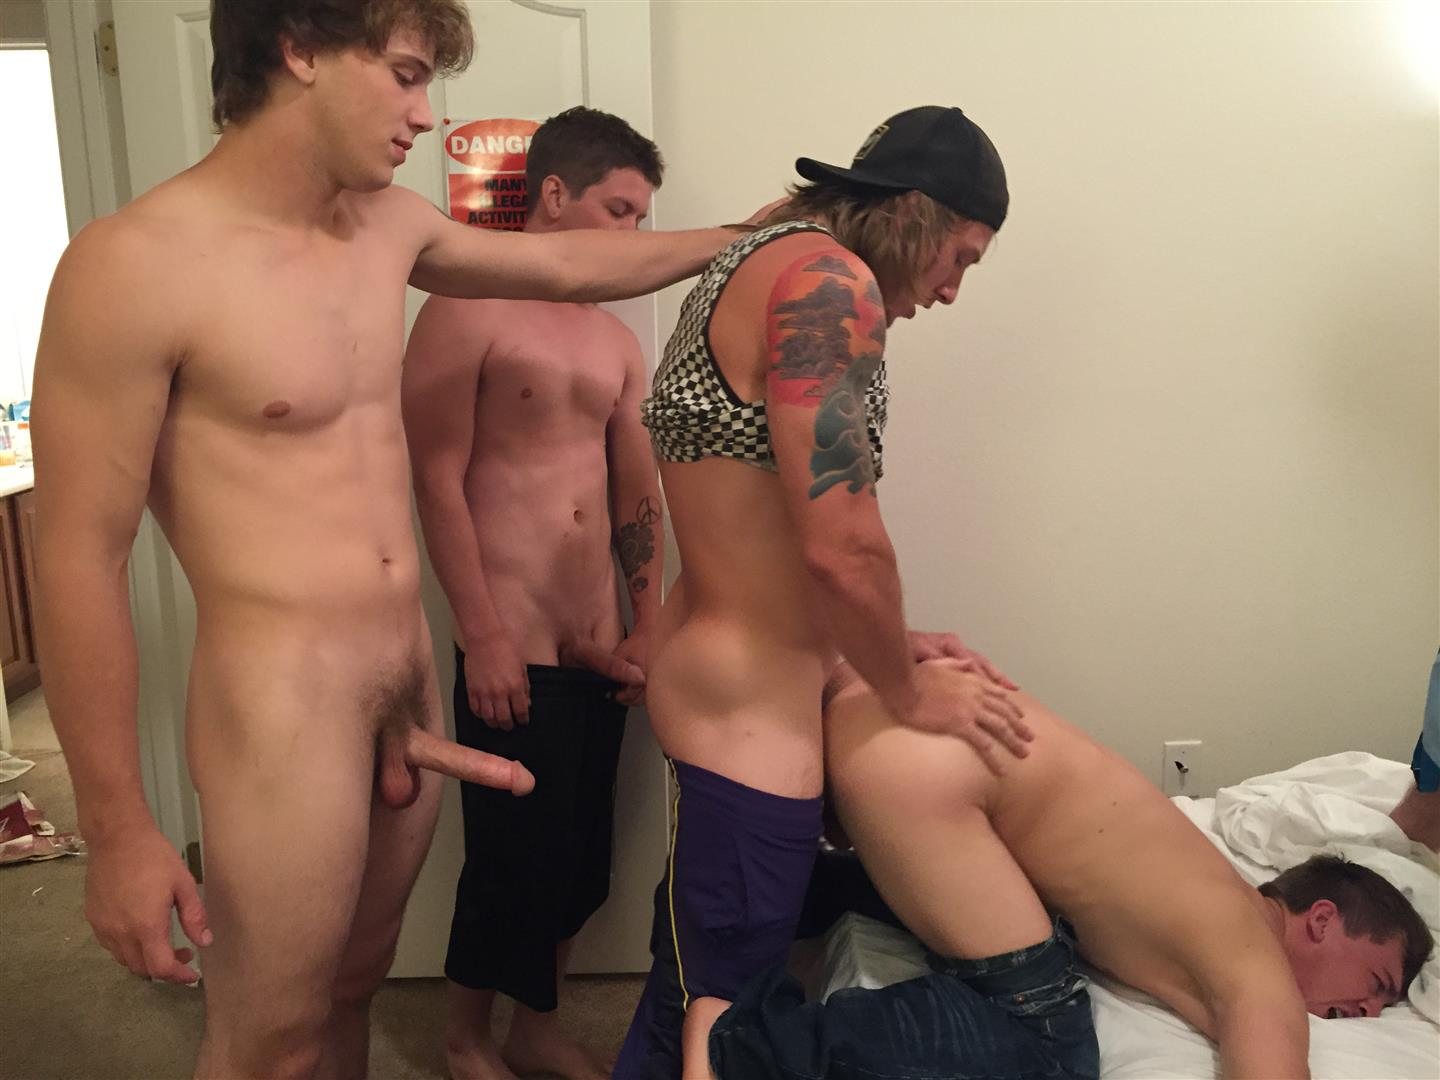 2 gay guys fucking when a girl joins in 6